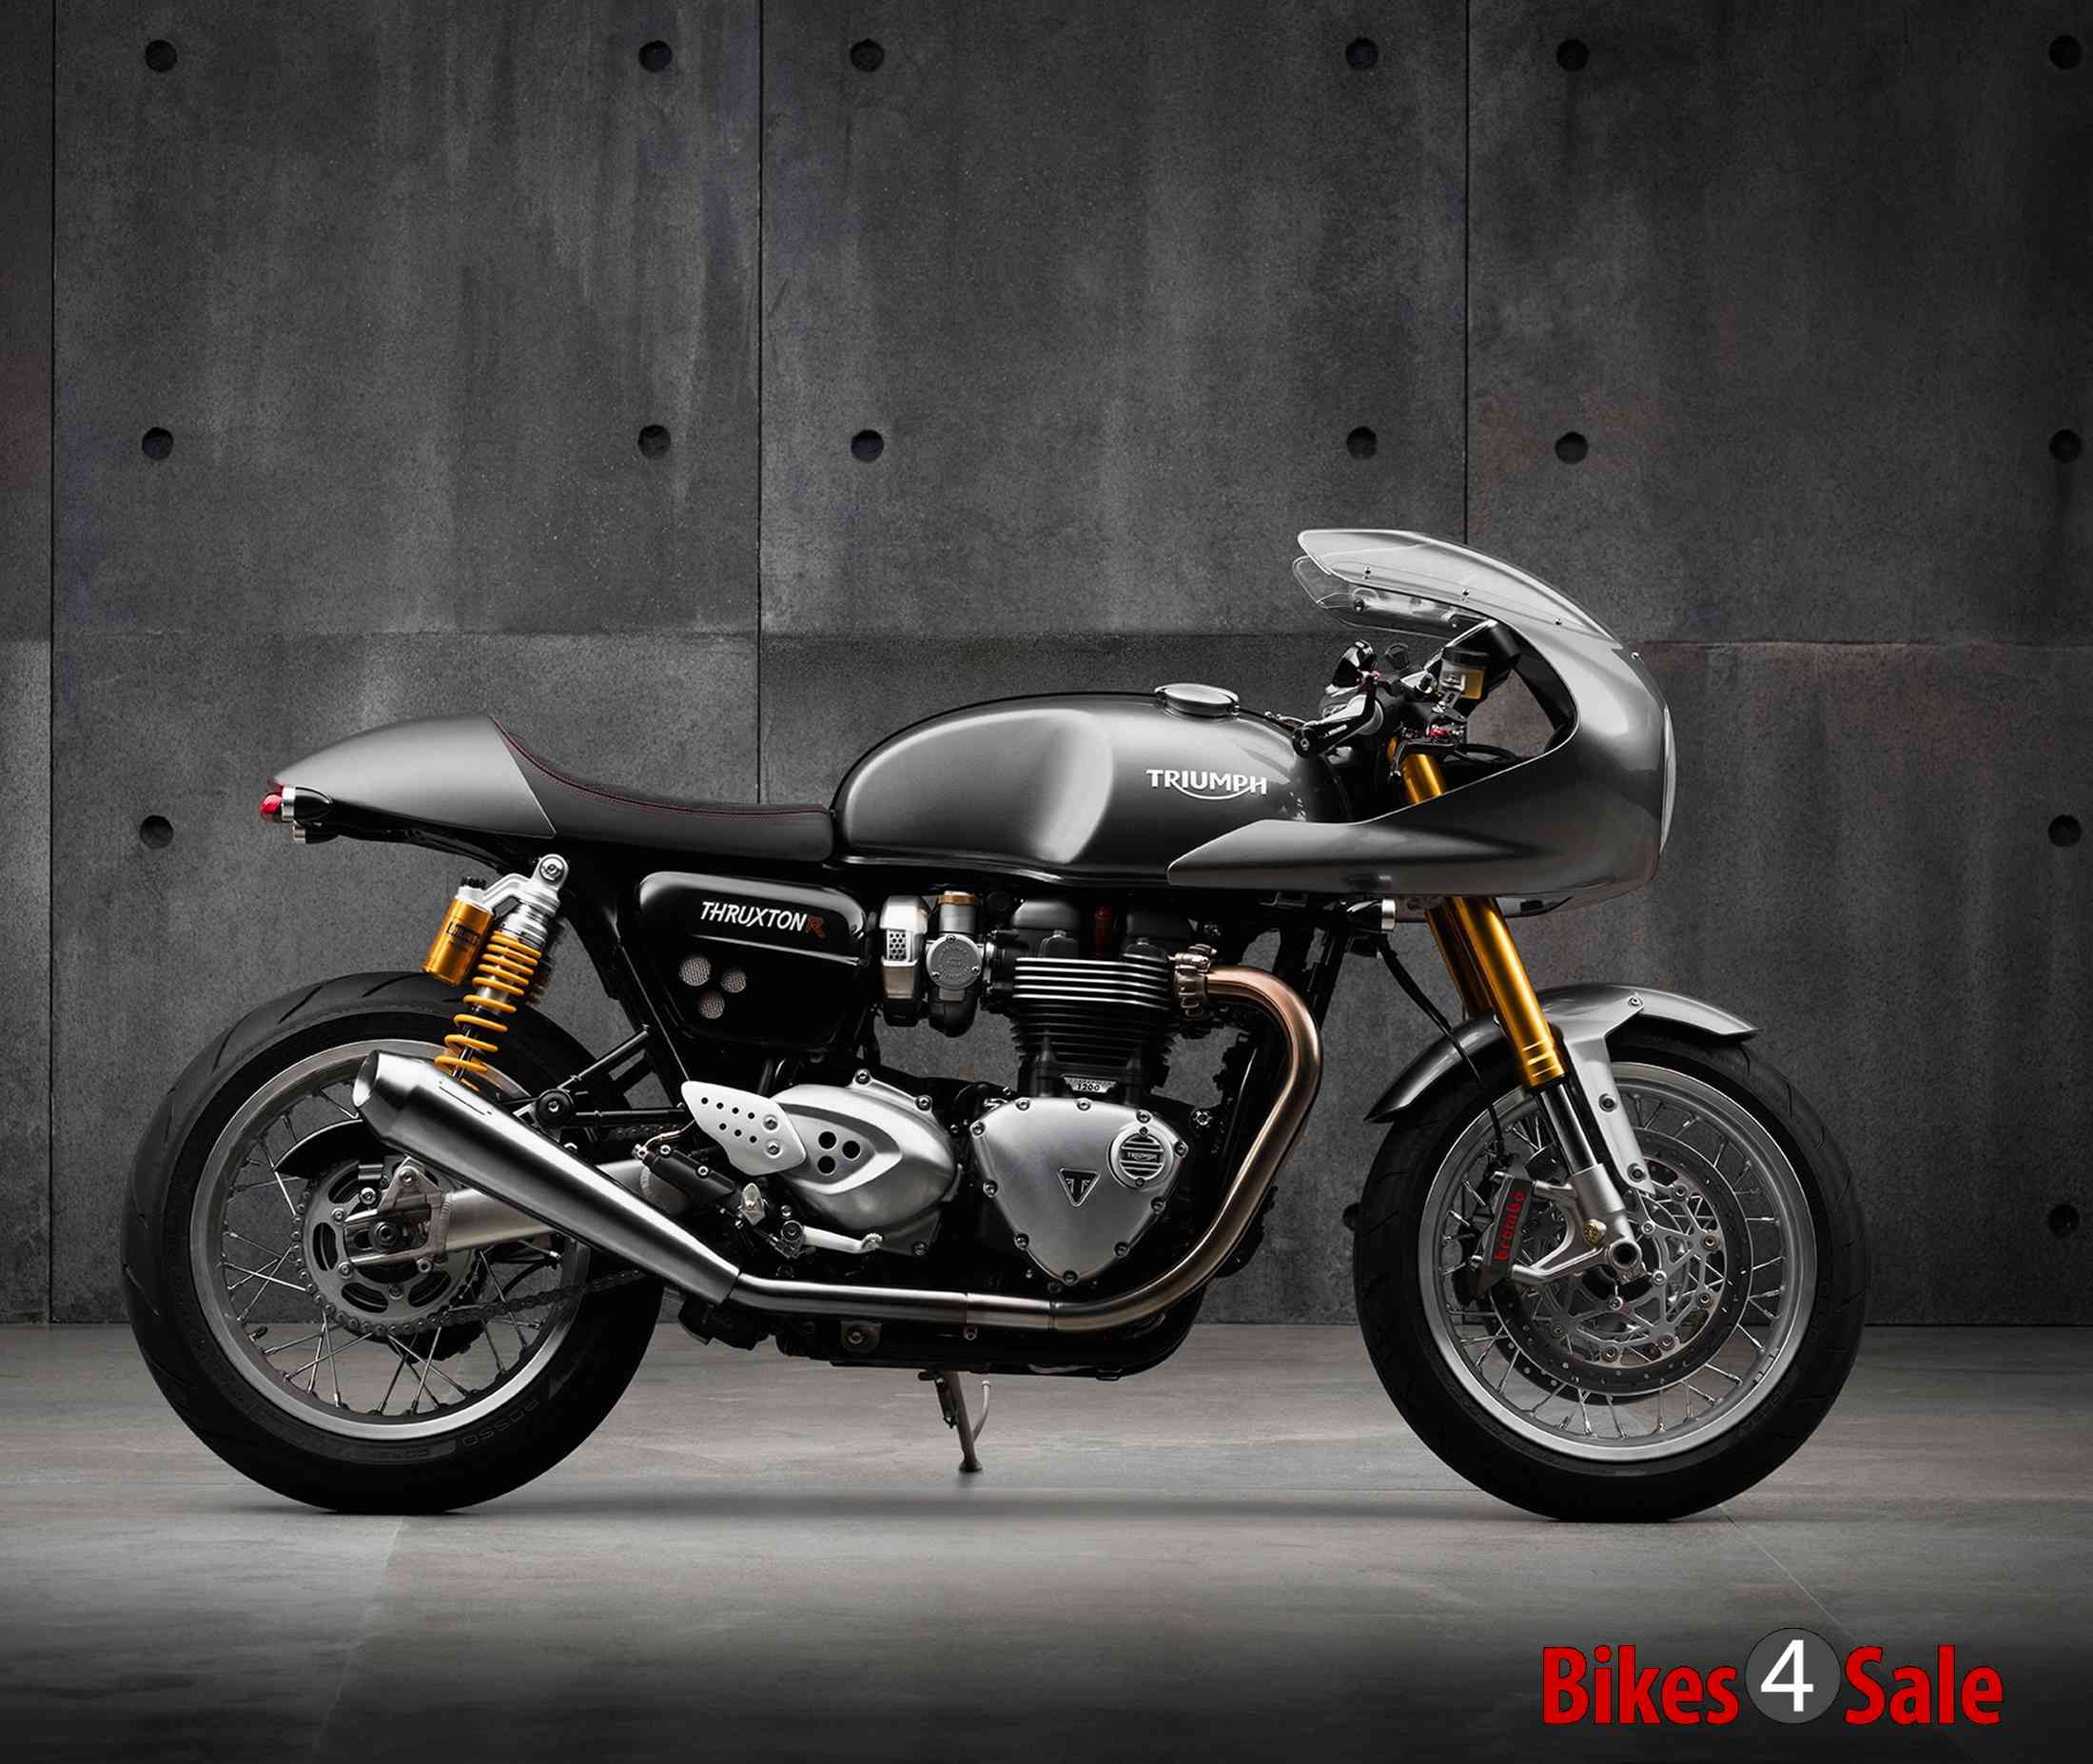 triumph thruxton r motorcycle picture gallery bikes4sale. Black Bedroom Furniture Sets. Home Design Ideas